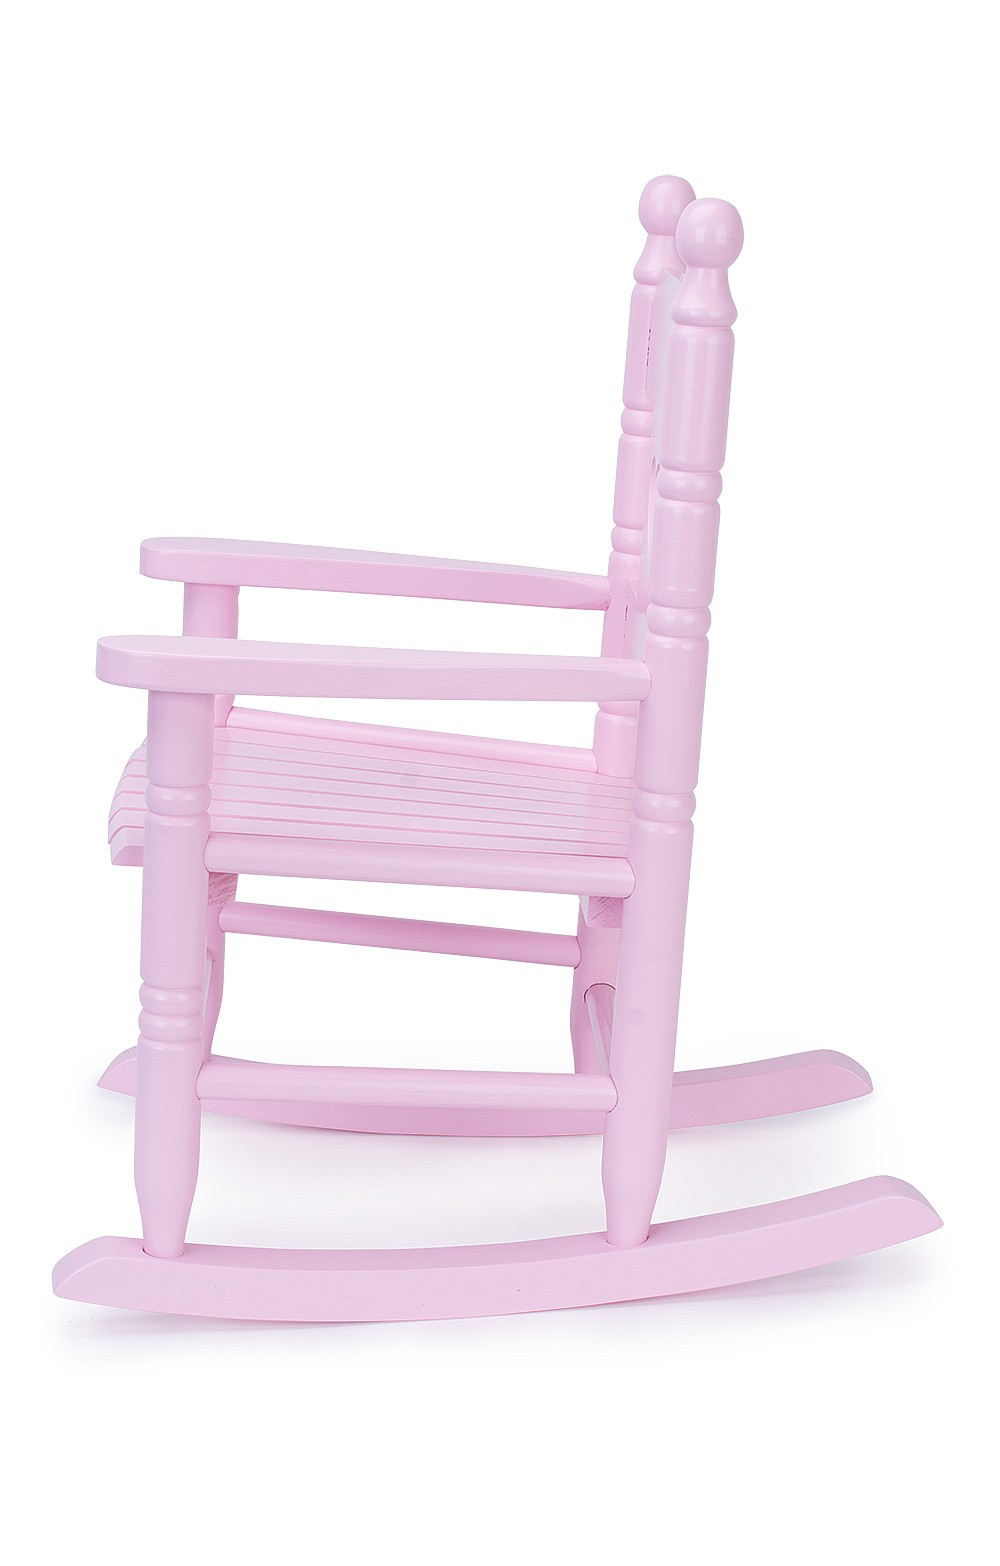 Admirable Wooden Childs Rocking Chair Caraccident5 Cool Chair Designs And Ideas Caraccident5Info